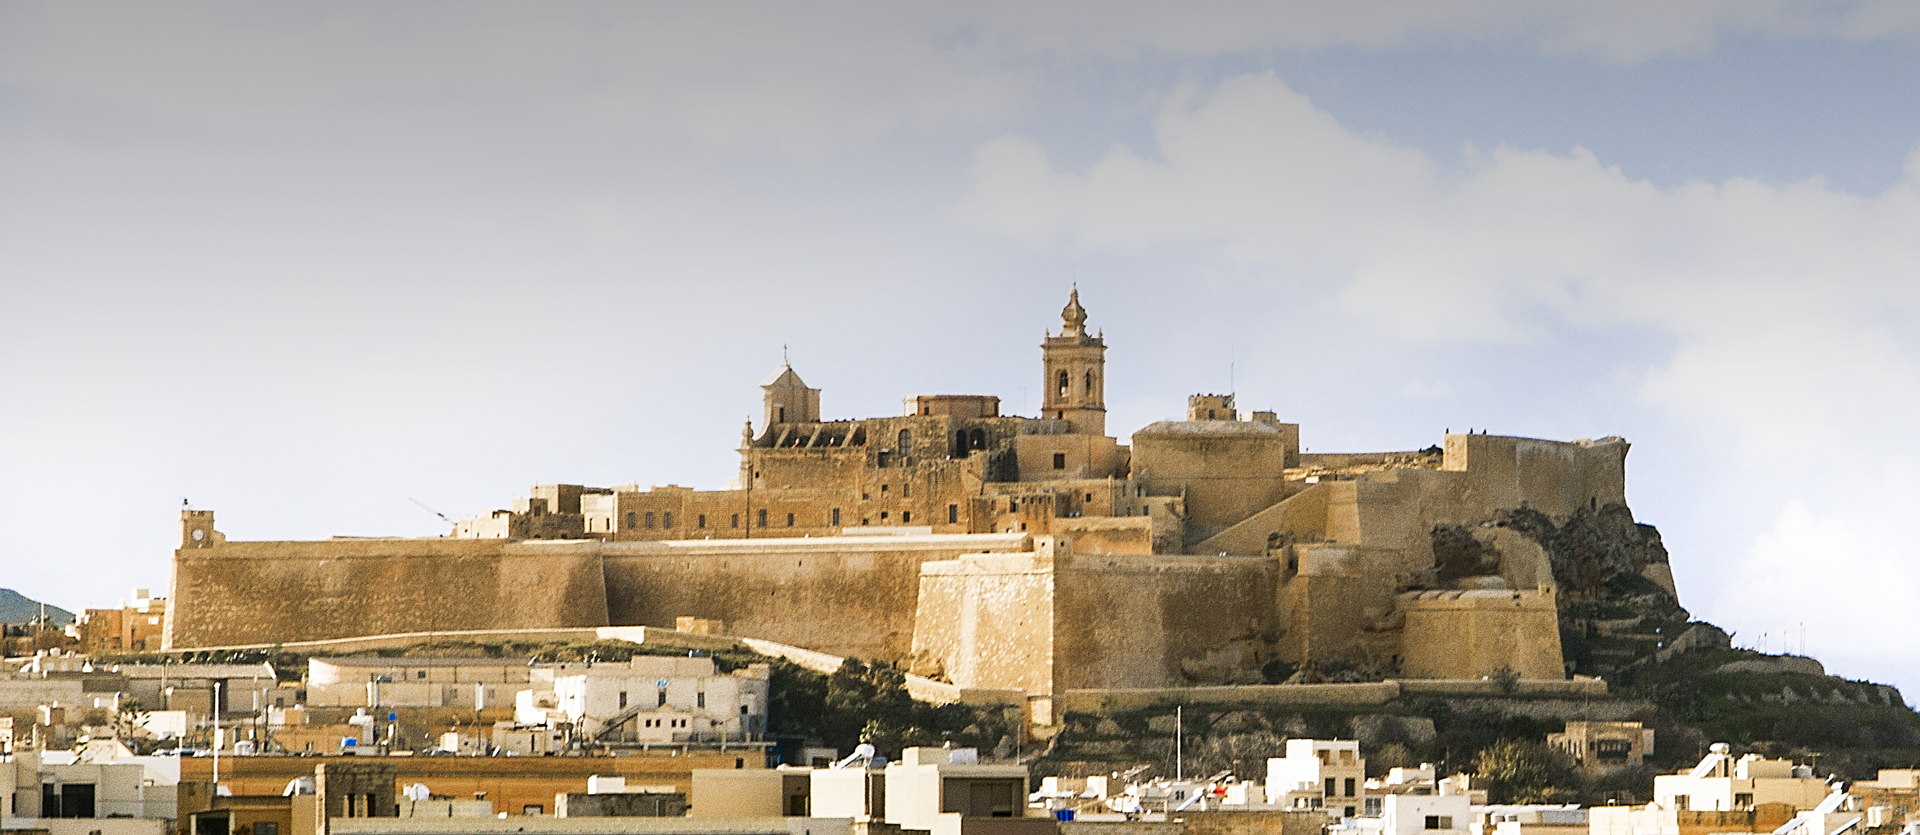 A place to visit, The Citadel Victoria, Gozo